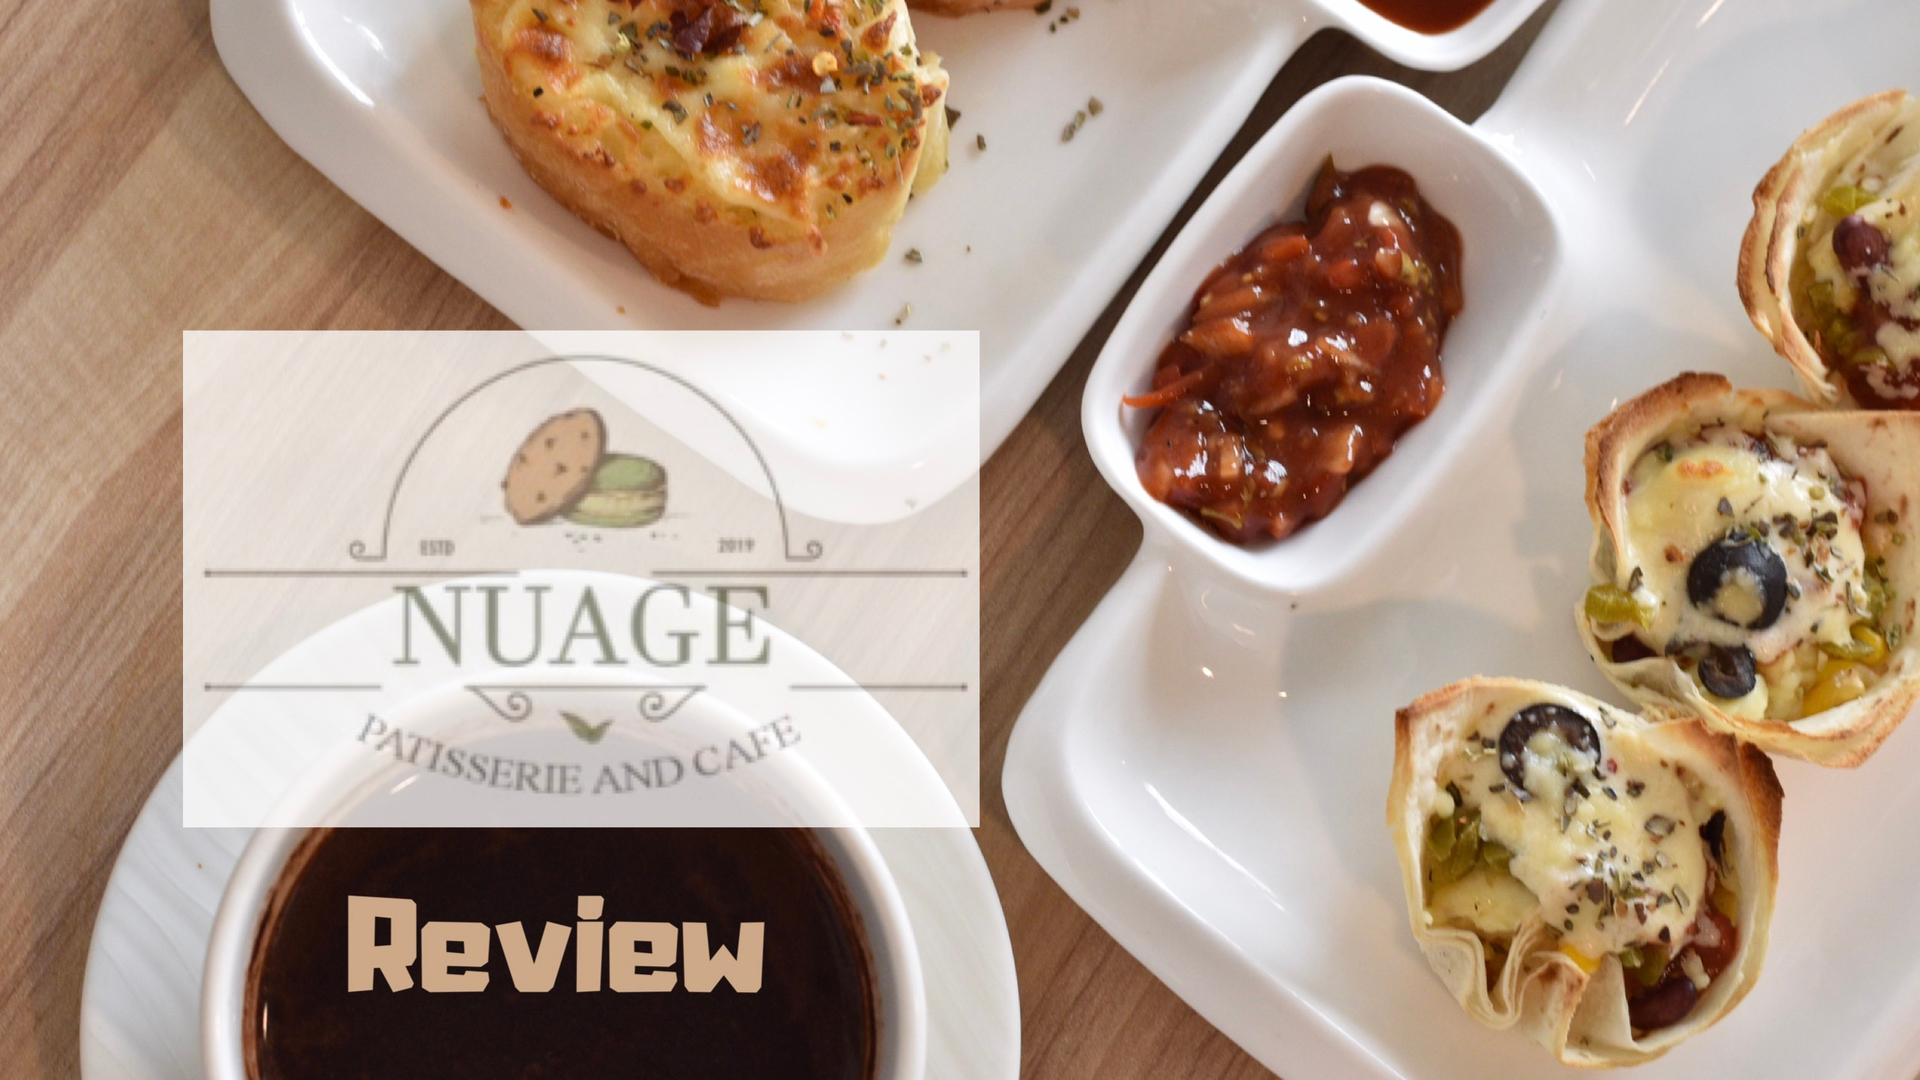 Nuage Pâtisserie & Cafe Indranagar is a hip spot to hang out image